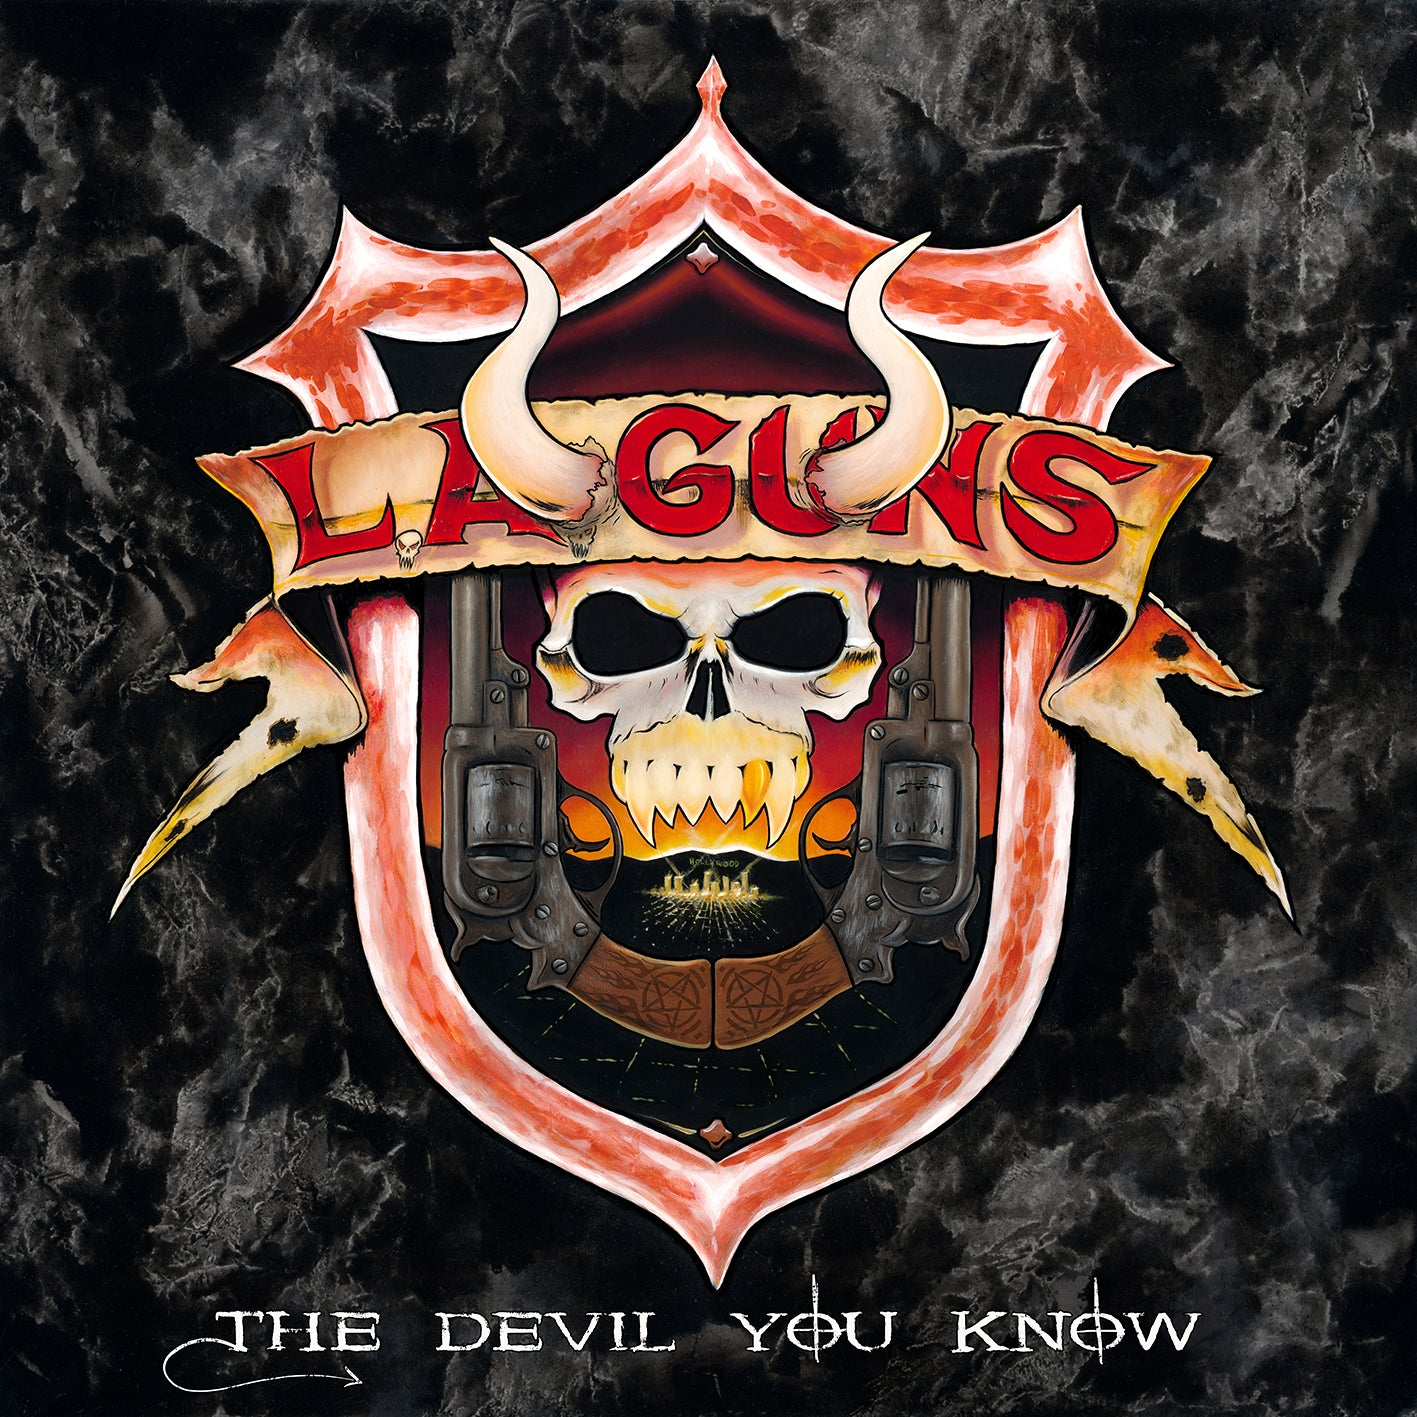 ¿Qué Estás Escuchando? - Página 5 LA_GUNS_the_devil_you_know_COVER_HI_1248b618-9035-4b8b-8850-f55f3a1fdbd6